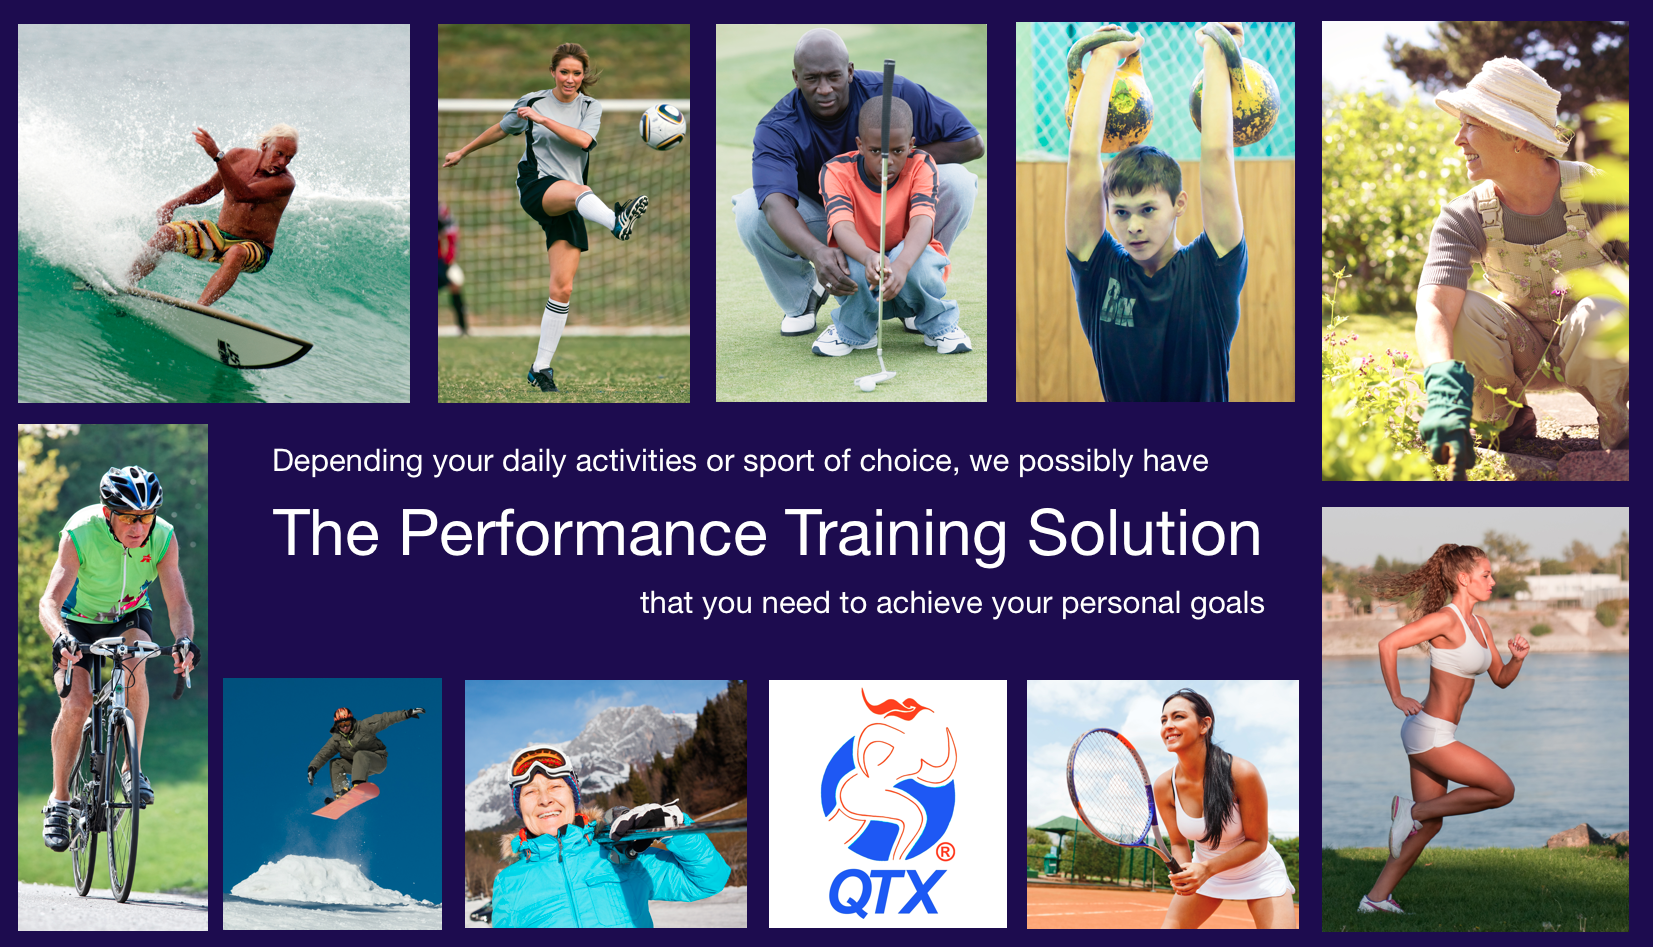 Performance training solution.png